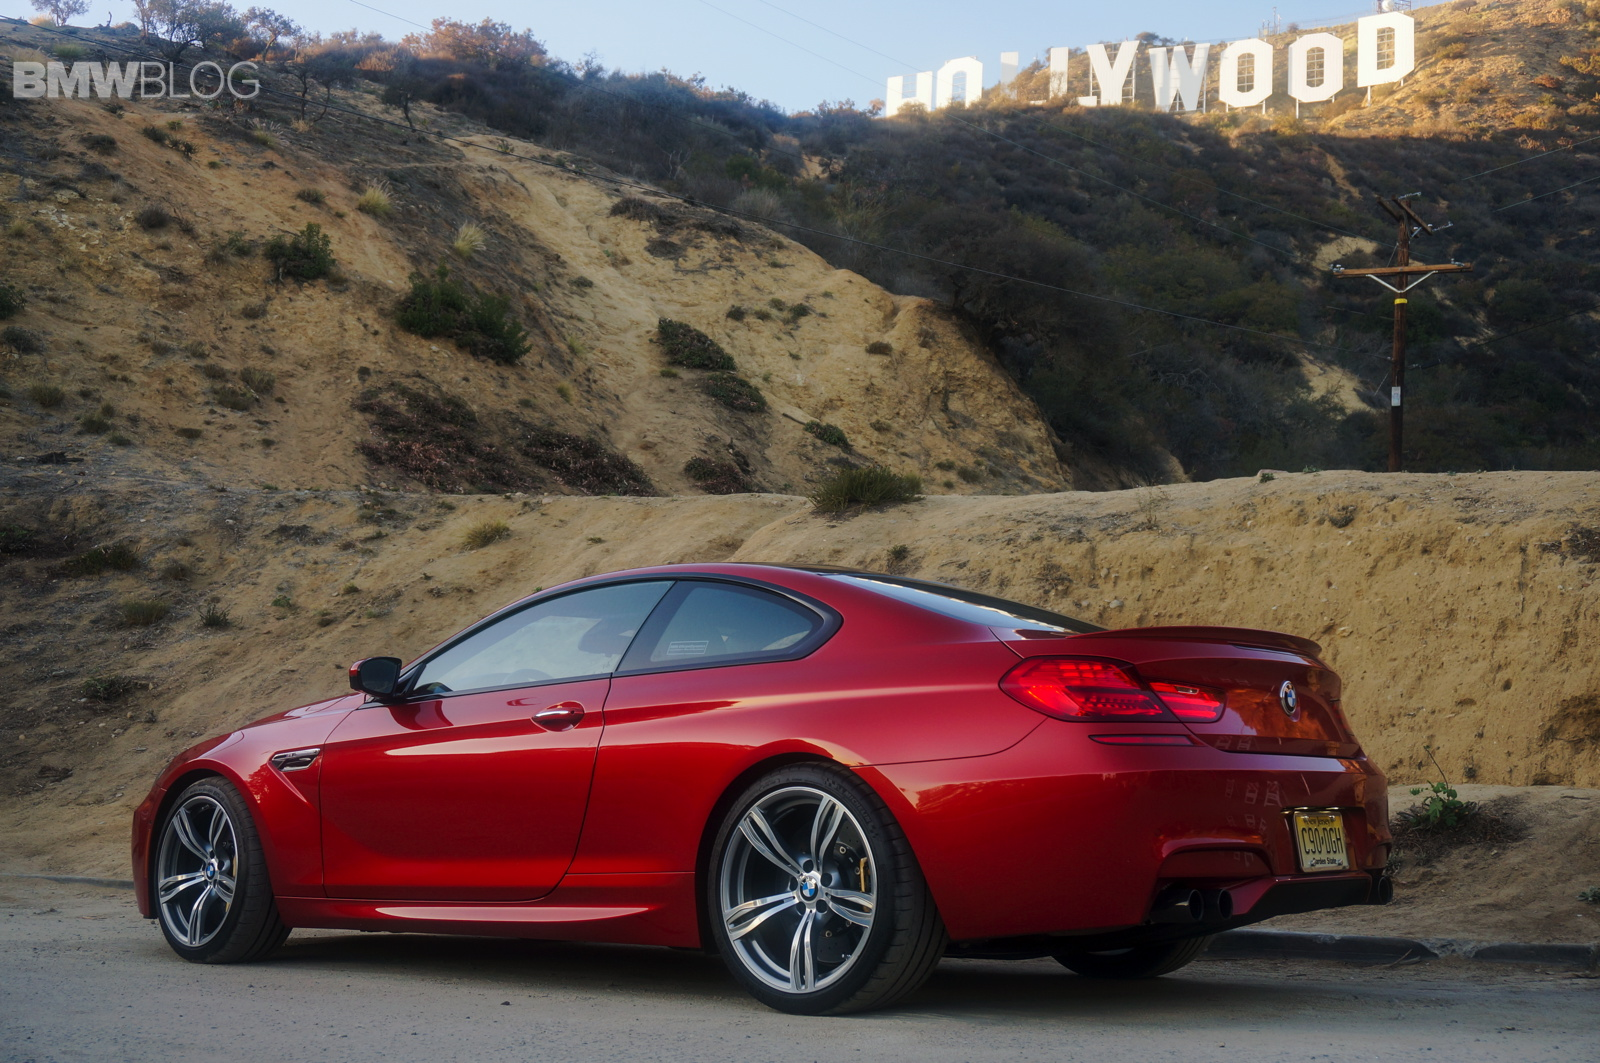 2014 bmw m6 coupe test drive review 6